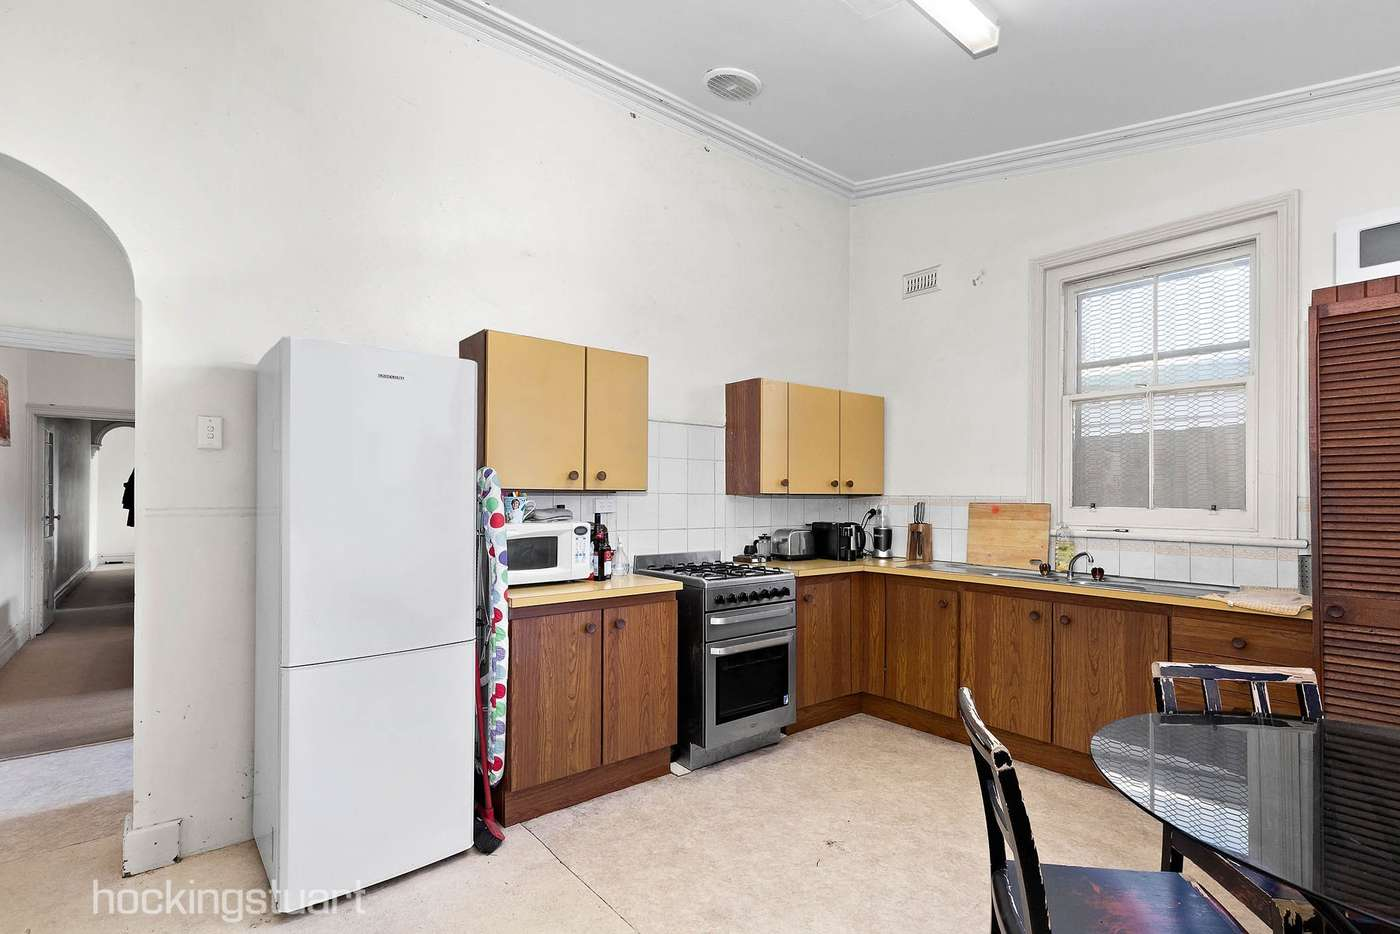 Fifth view of Homely house listing, 26 Union Street, Prahran VIC 3181